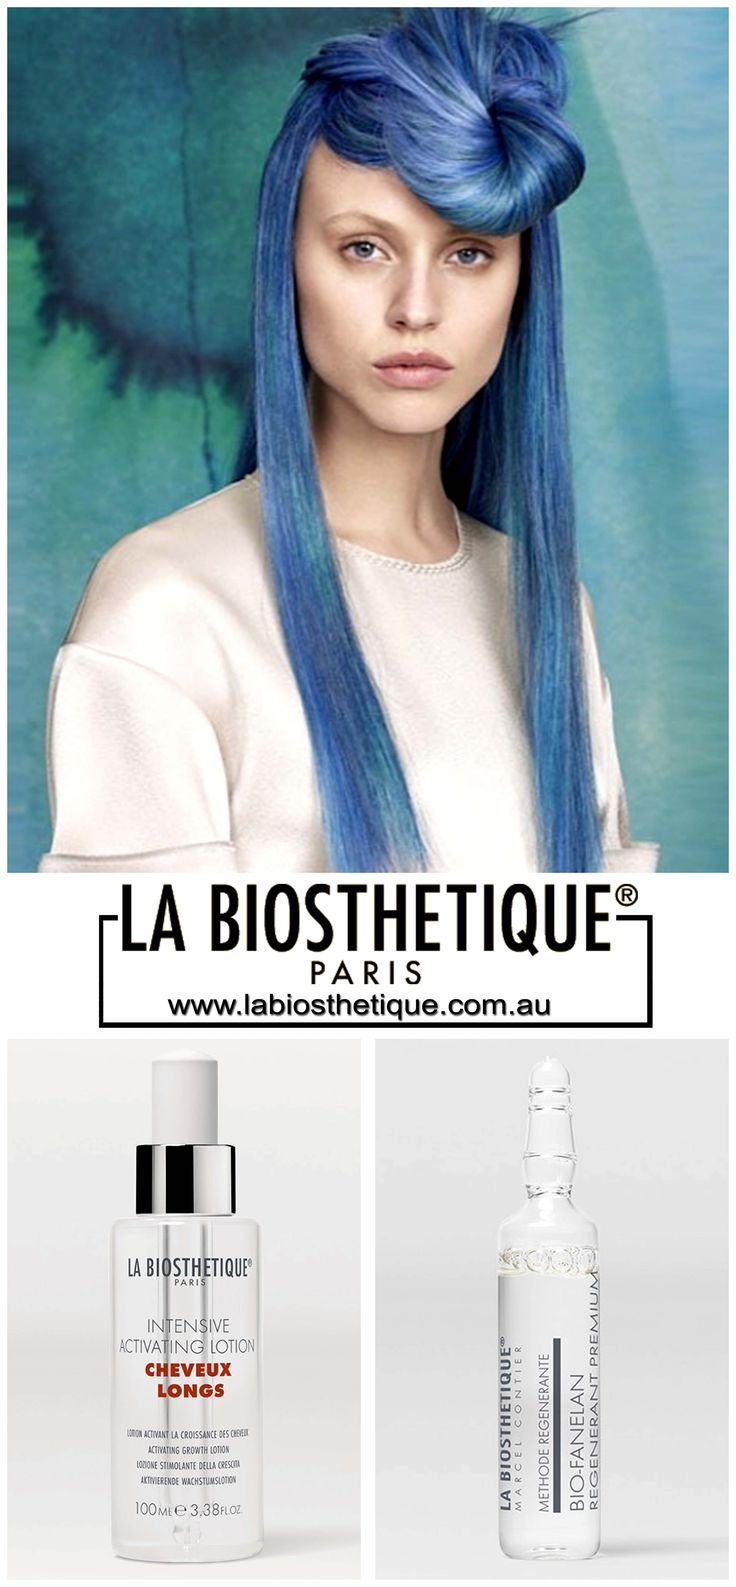 This scalp lotion stimulates the cell activity in the hair roots and accelerates hair growth. It also supports the formation of stable, strong hair. Hair care │Hair Growth │Hair styles │Hair loss treatment │New hair │Loose waves hair │Natural hair tips │Natural hair care │Deep conditioner │Shampoo│ Hair Products #Haircare #Hairgrowth #Hairlosstreatment #Newhair #Straithair #Loosewaveshair #Naturalhairtips #Naturalhaircare #Deepconditioner #Shampoo# Hairproducts